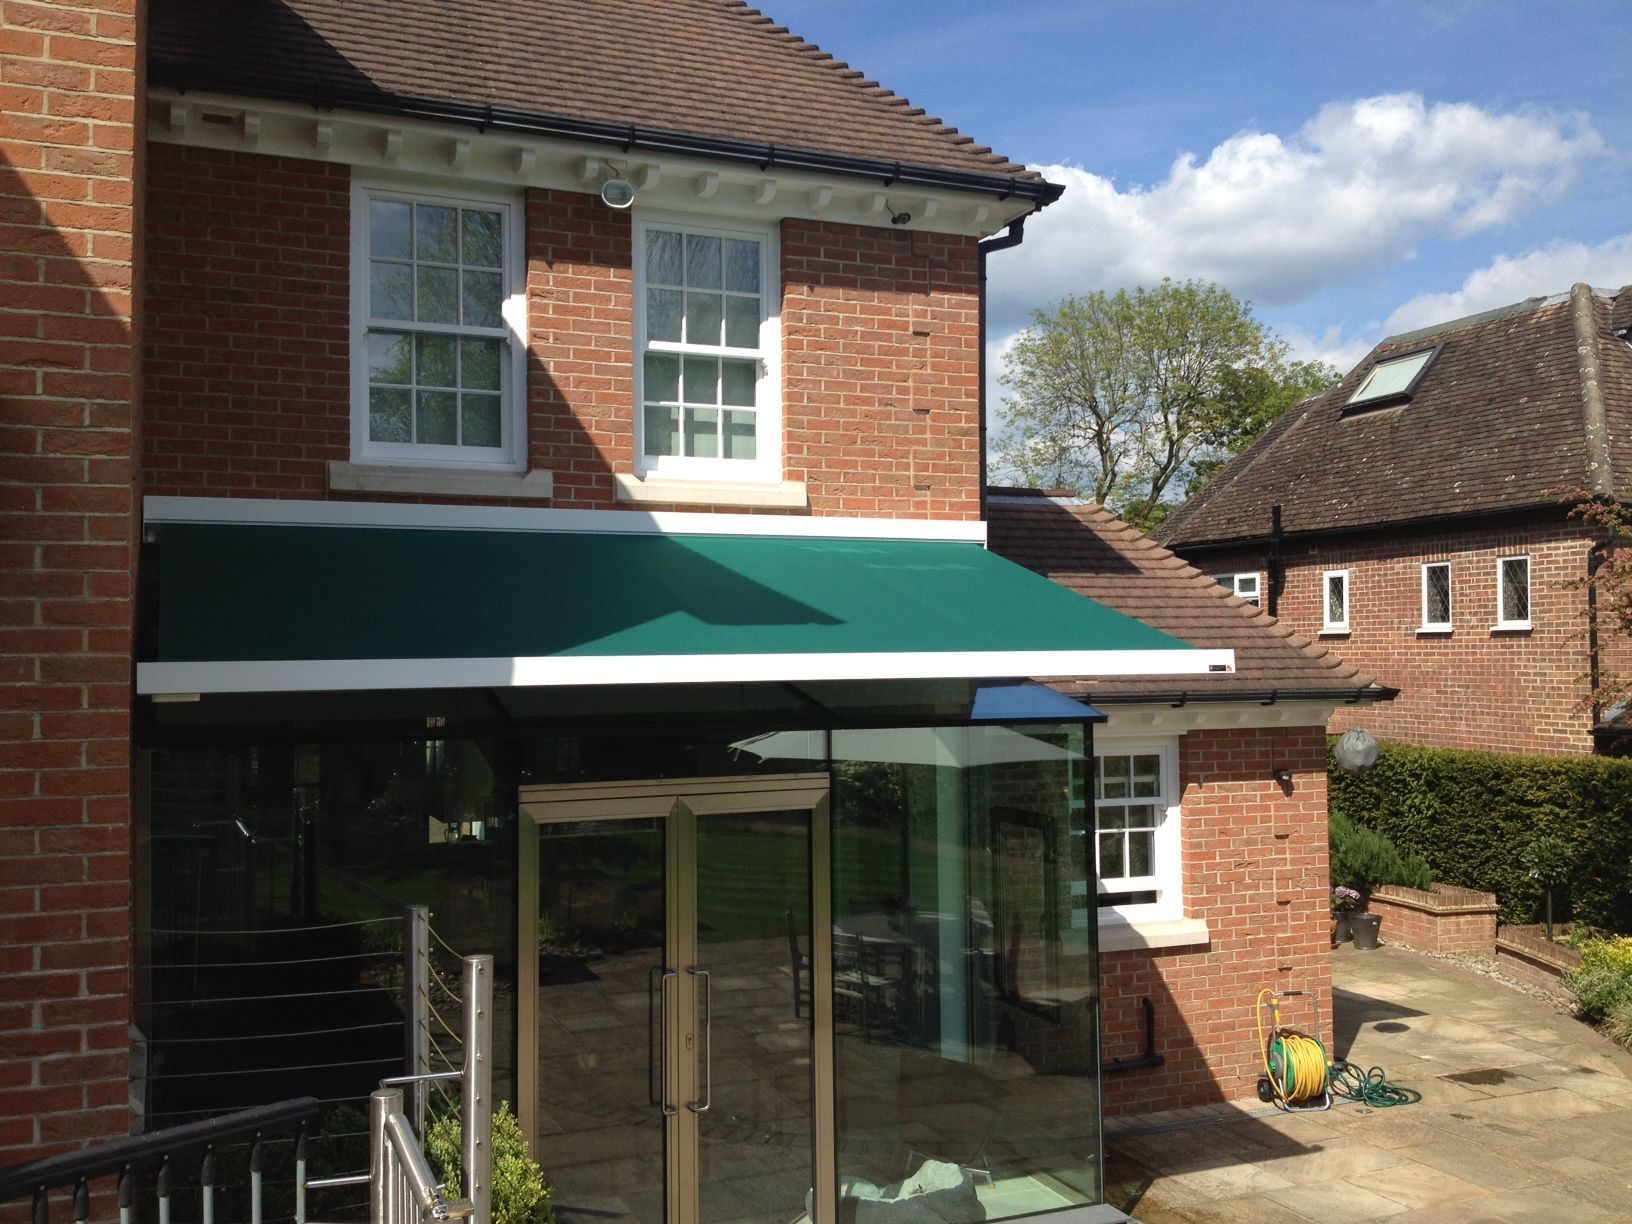 Patio Awnings Outdoor Awnings Caribbean Blinds Patio Awning Outdoor Awnings Awning Installation